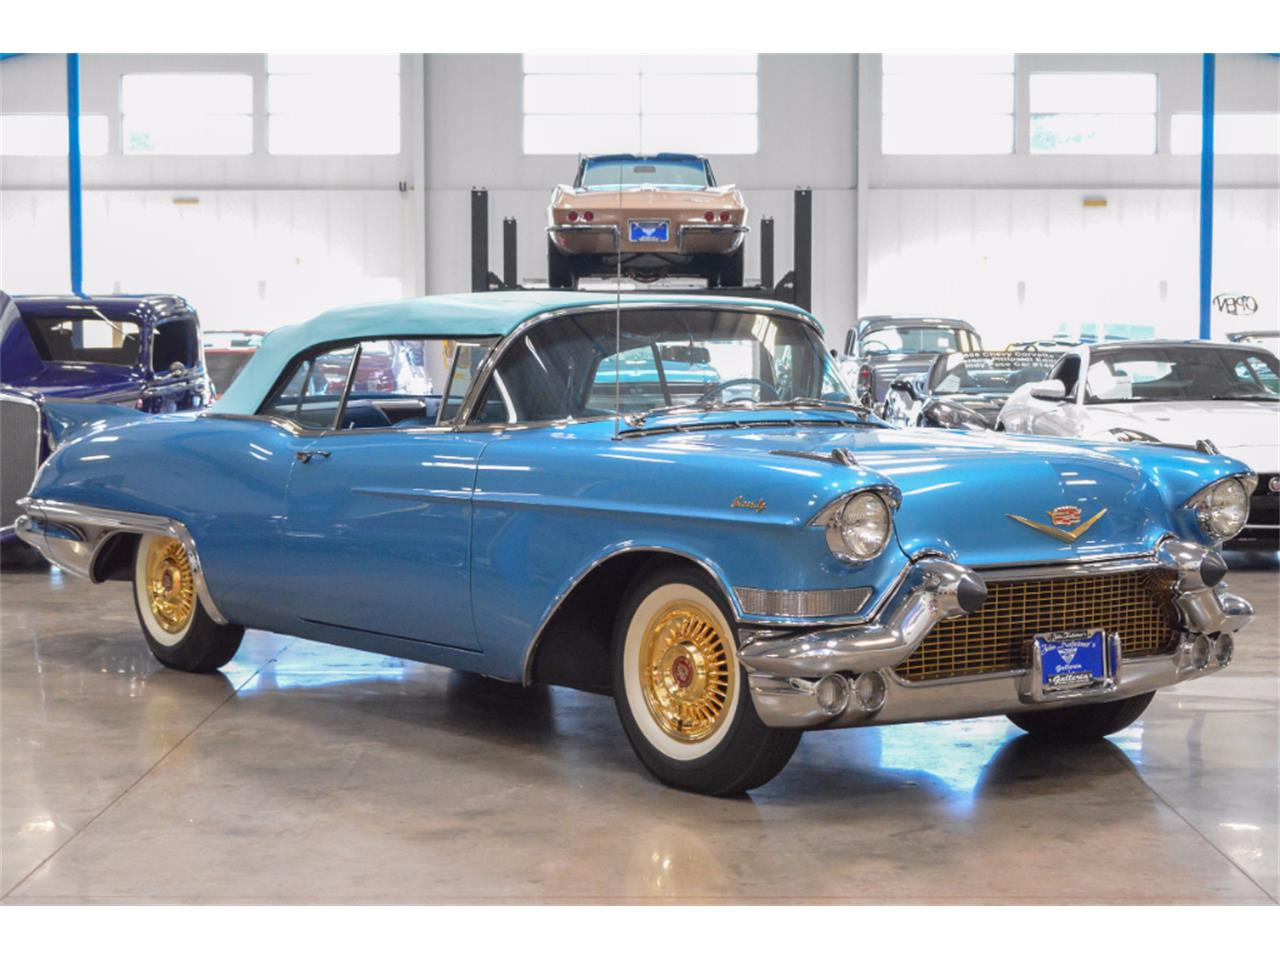 Large Picture of Classic '57 Cadillac Eldorado located in Ohio Auction Vehicle Offered by John Kufleitner's Galleria - LKLZ